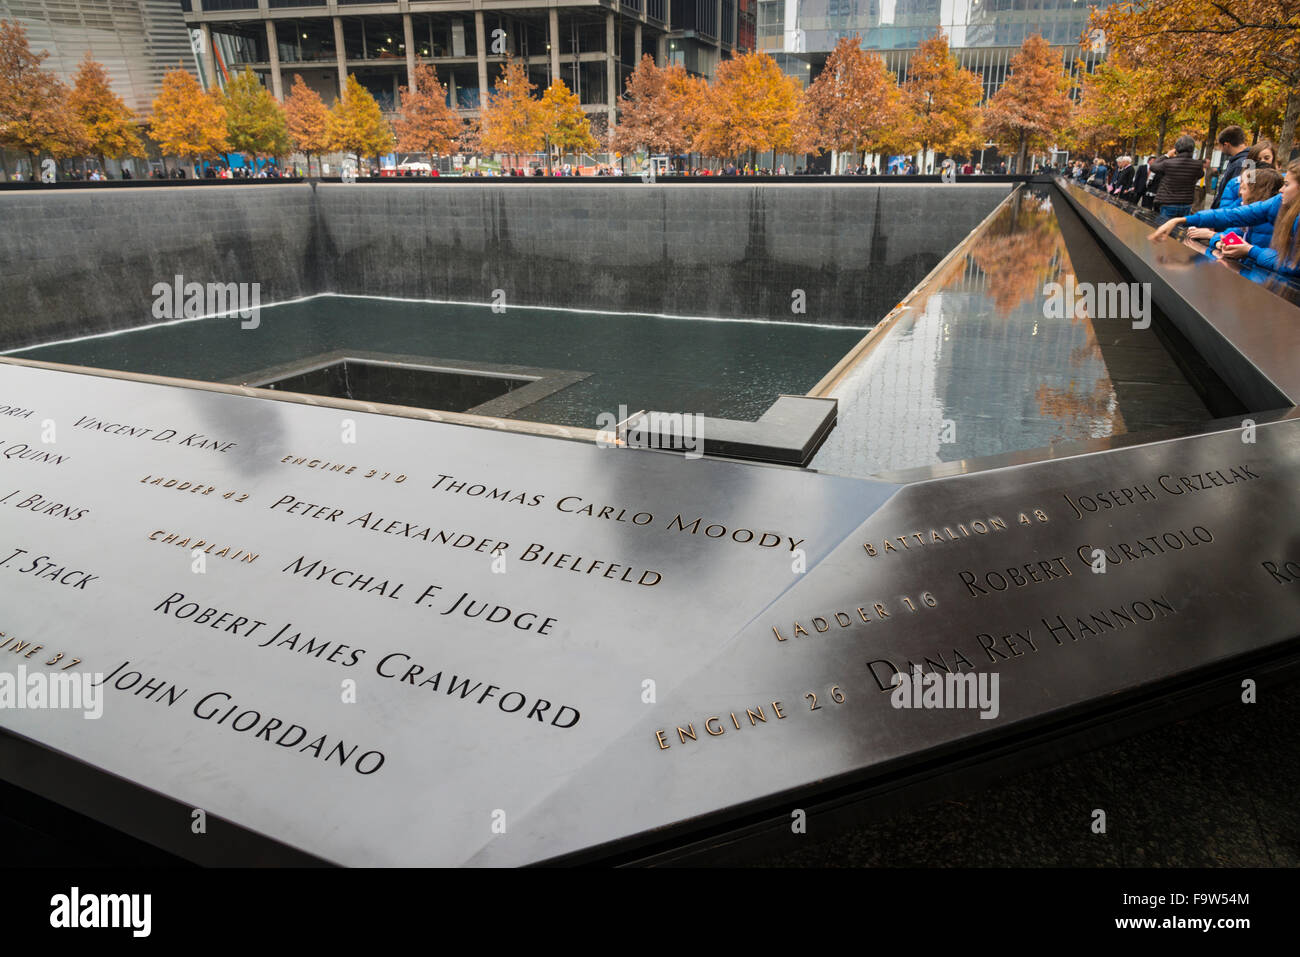 World Trade Center 9/11 Memorial, New York, USA - Stock Image